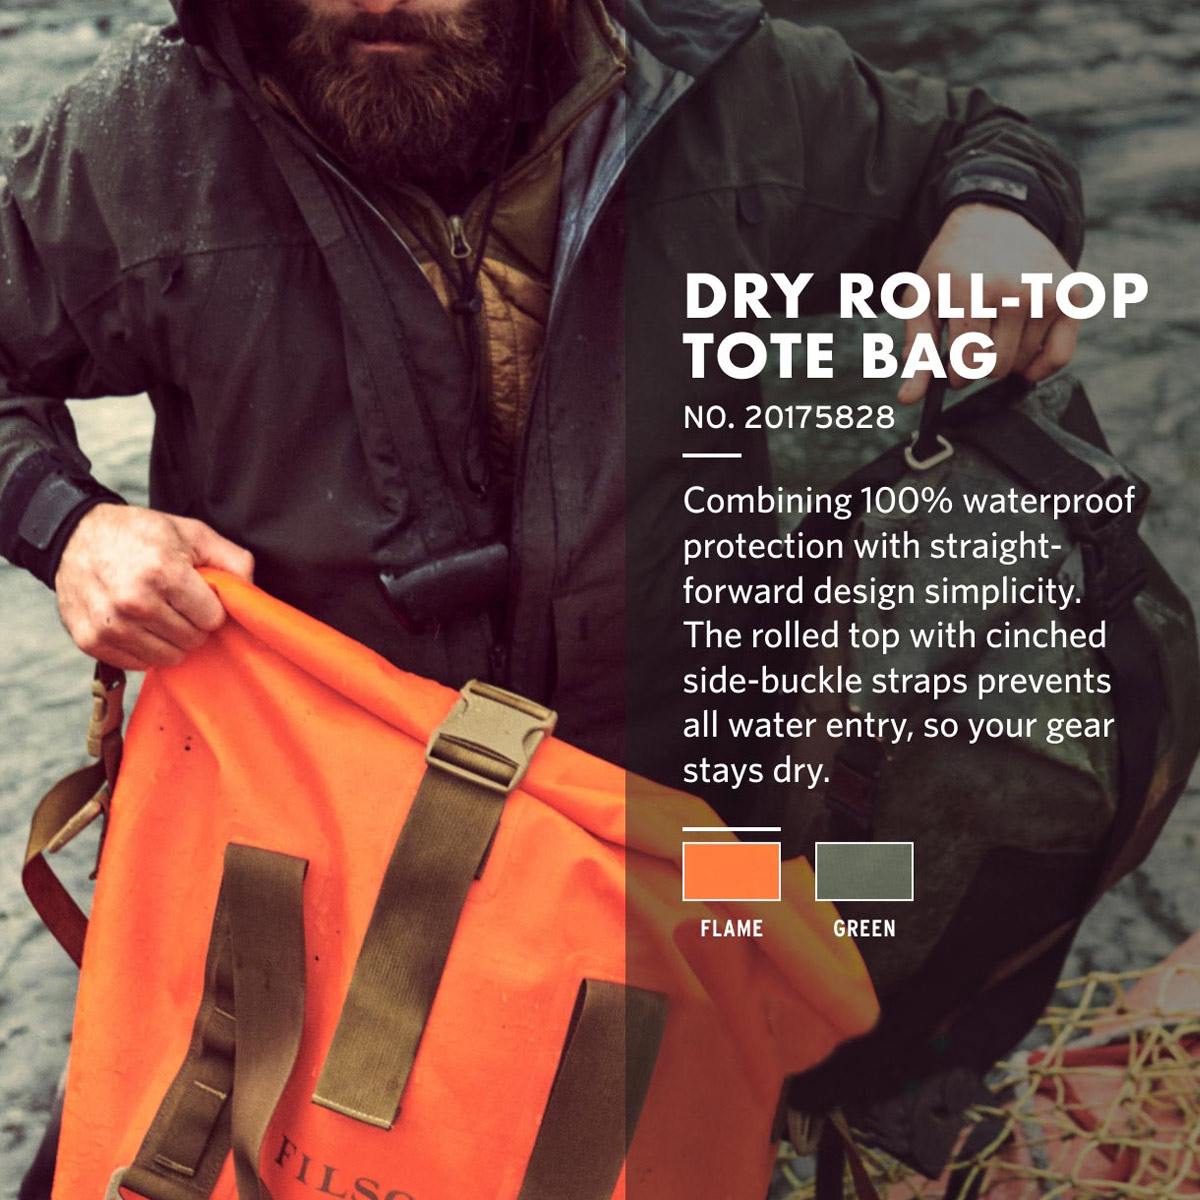 Filson Dry Roll-Top Tote Bag